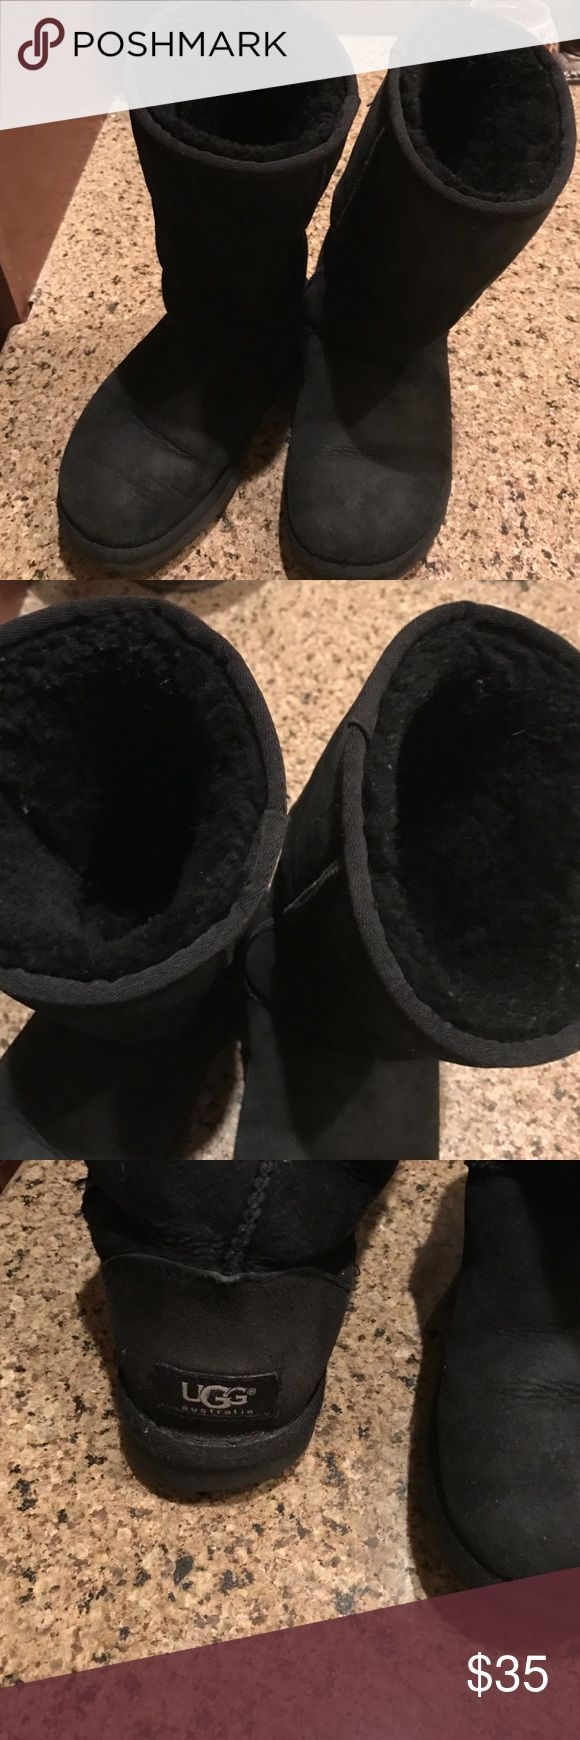 Ugg Boots Ugg boots in black, purchased in 2013 in SF Uggs store. I have 2 new pairs, and will be sad to see these go! Still in great condition! Purchased new sheepskin insoles last year. Bottoms are still great, some wear on inner heel corner on bottom, which is normal wear due to walking gait. Some normal fading of black, normal for this color. UGG Shoes Winter & Rain Boots